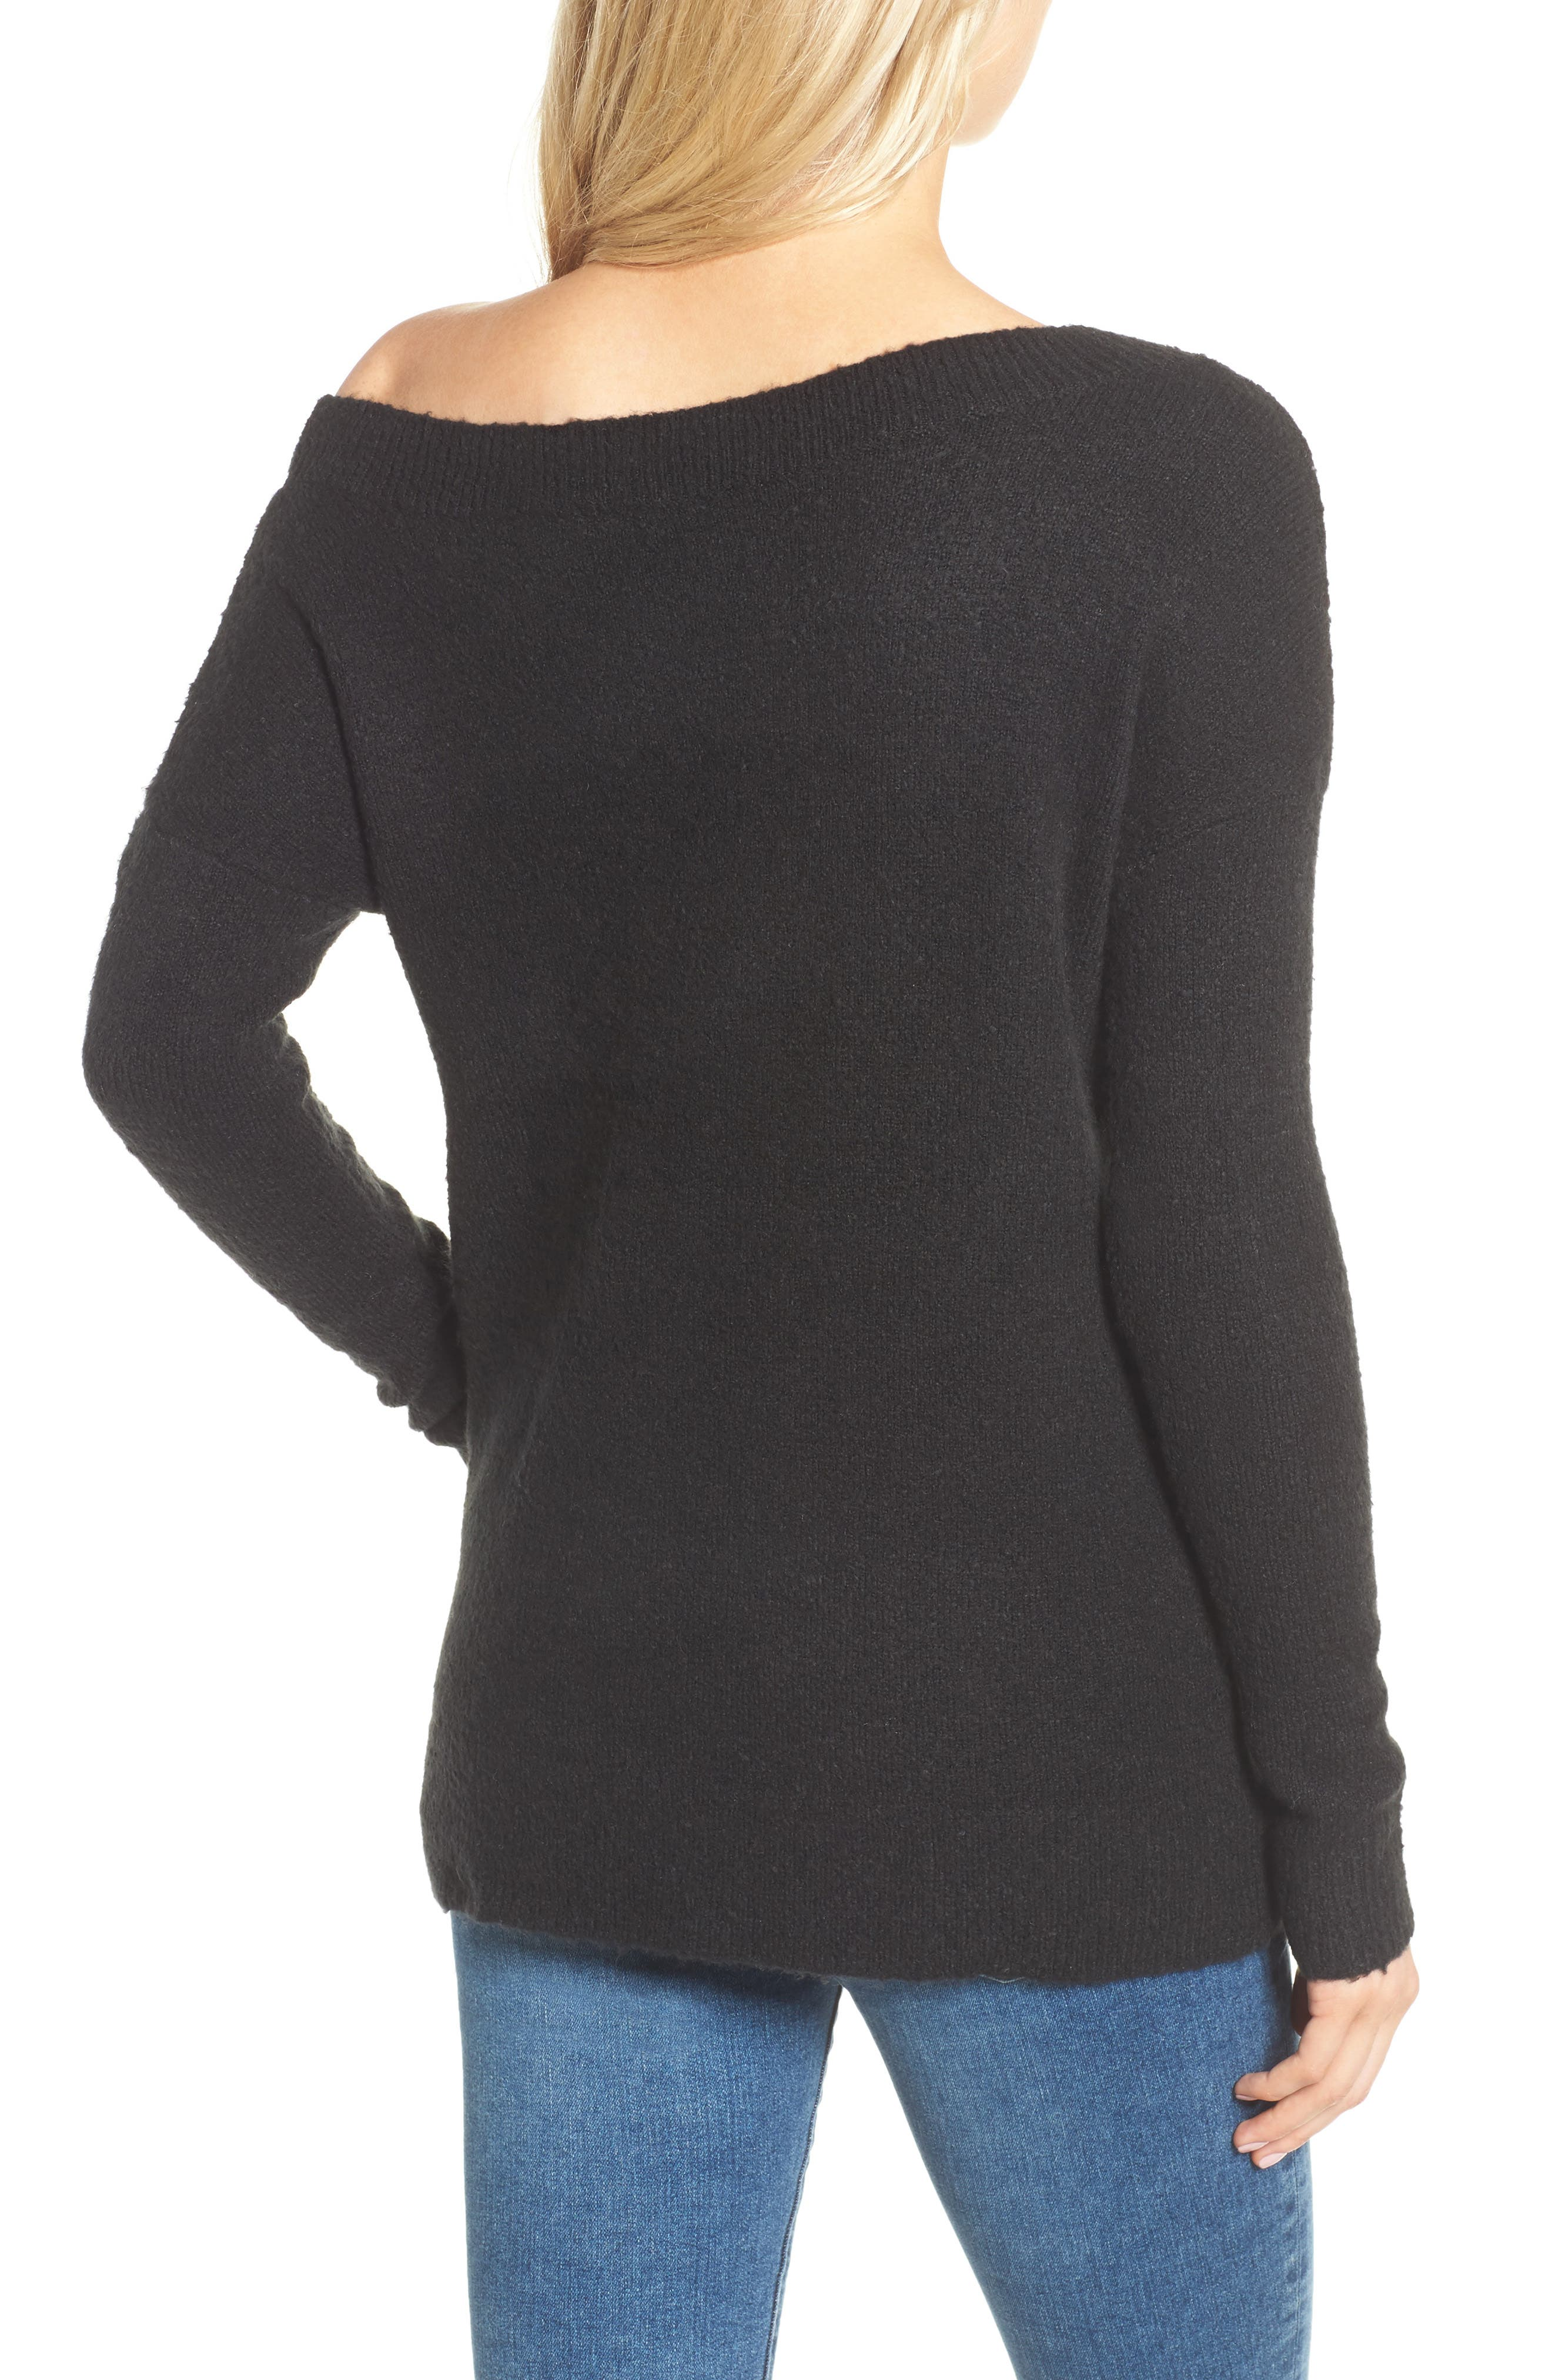 Urban Flossy One-Shoulder Sweater,                             Alternate thumbnail 3, color,